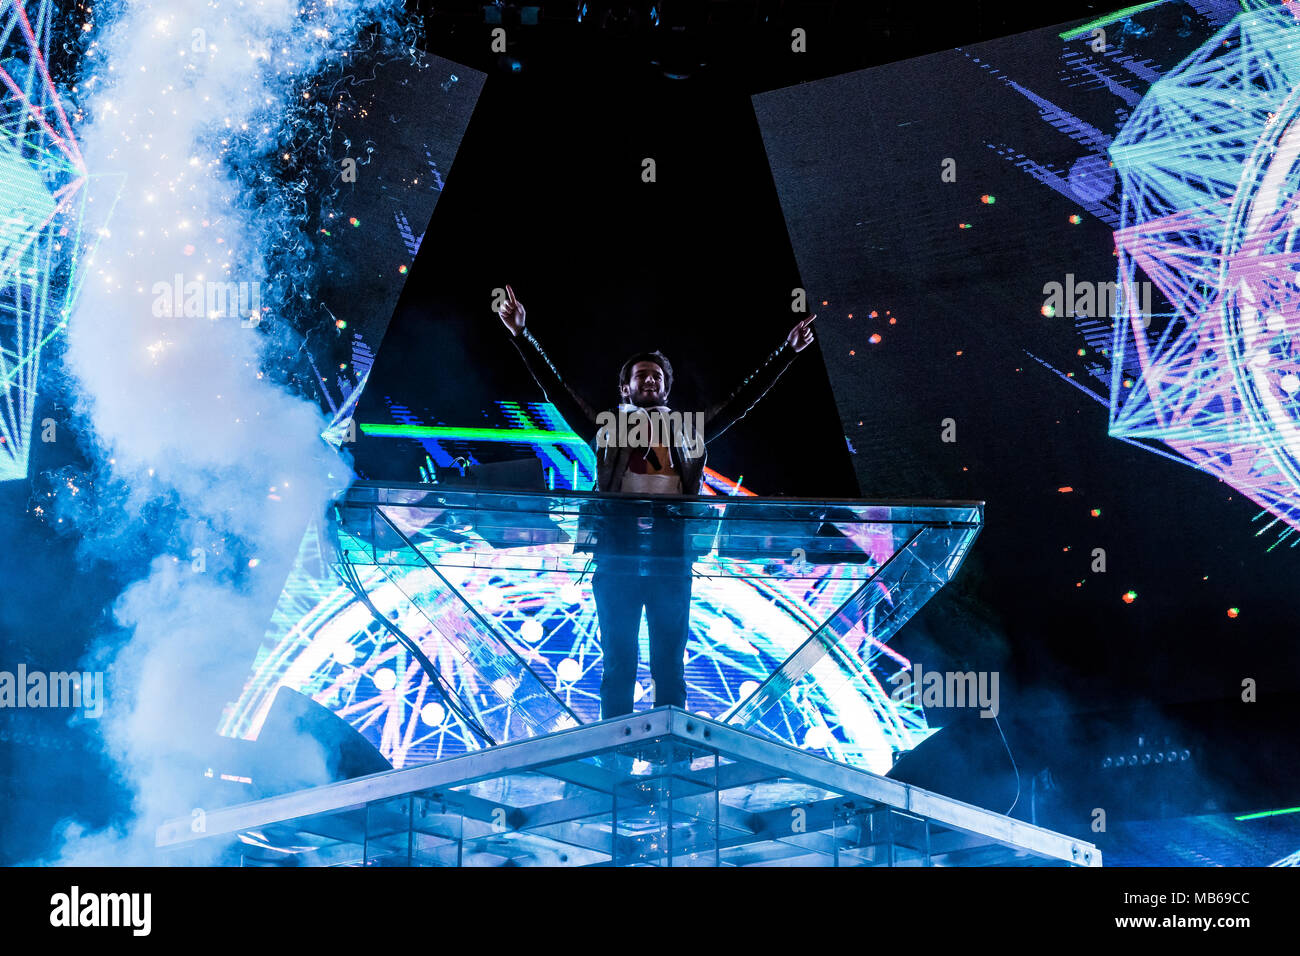 Zedd performs at Air + Style Festival in Los Angeles, CA - Stock Image